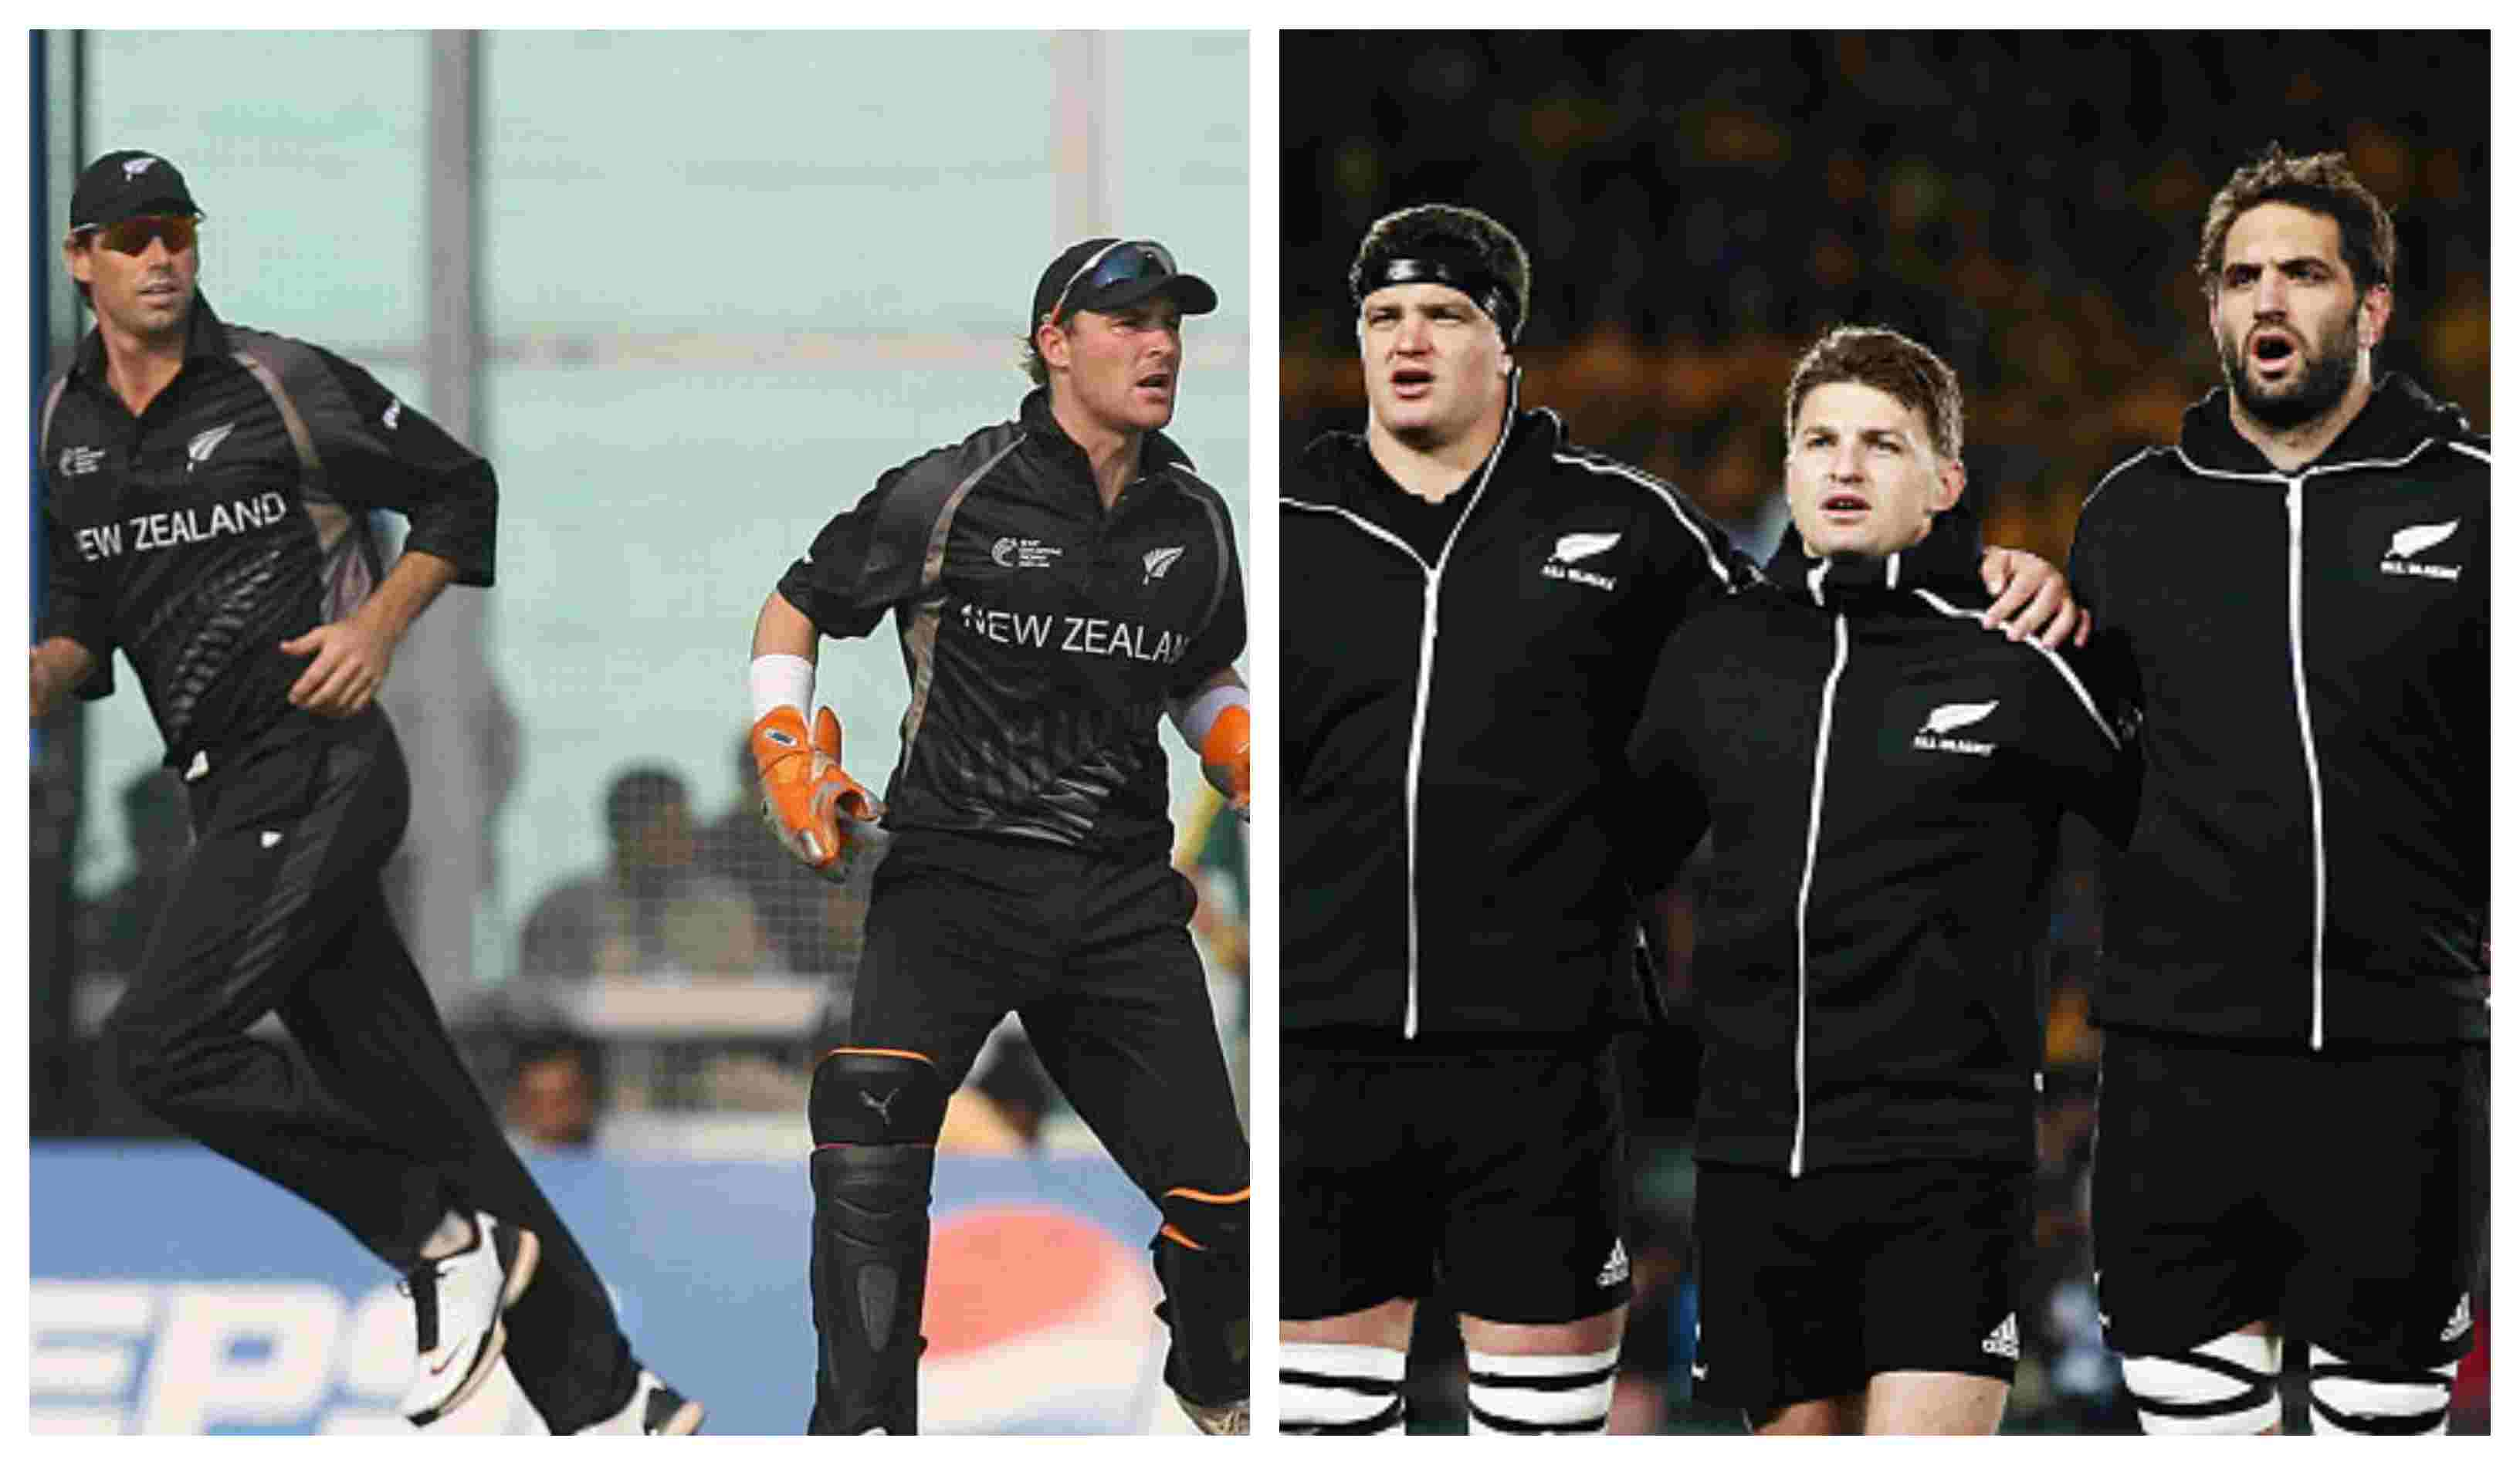 New Zealand's cricket renowned names will face All Blacks in a T20 match next year